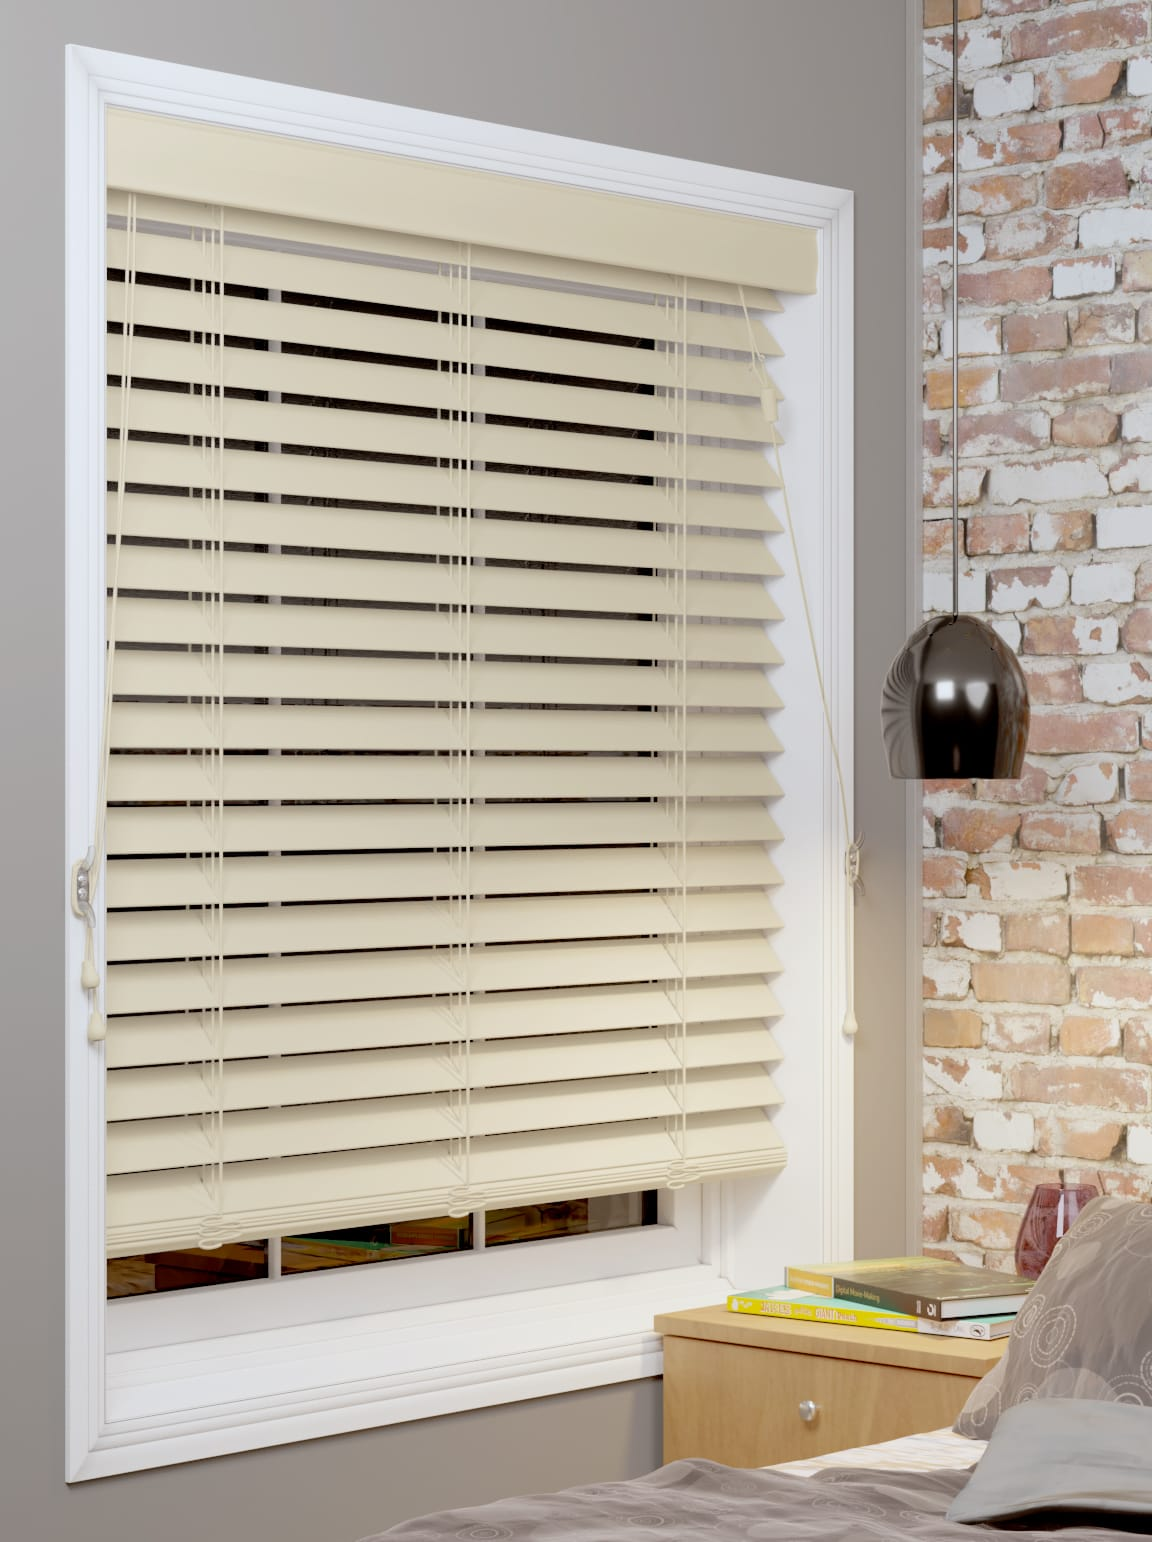 Image 9893 From Post: Wood Venetian Blinds Furniture – With Sheer Blinds  Also Roman Shades In Furniture Design